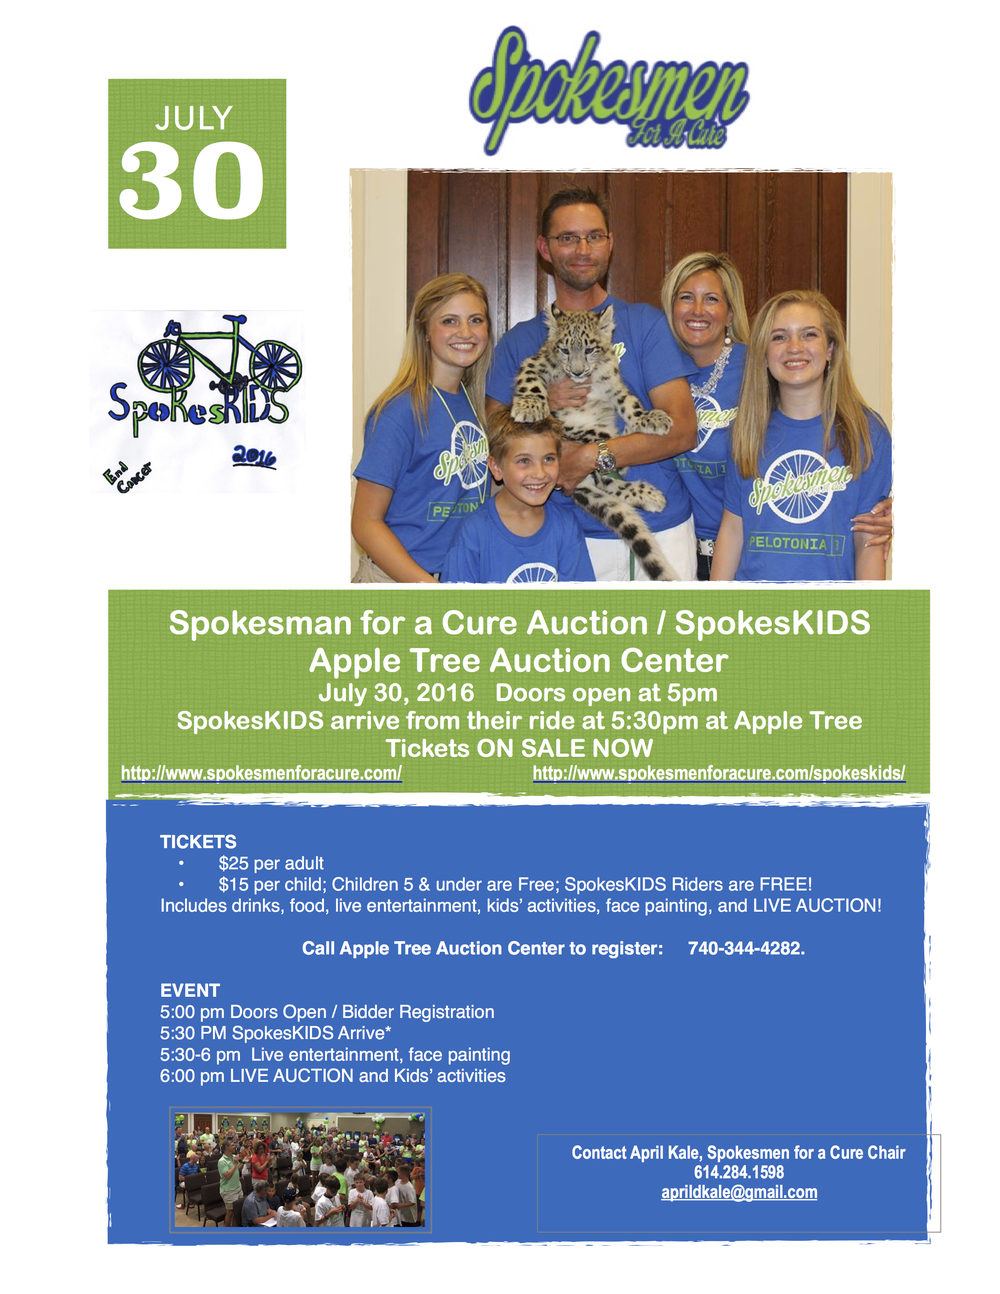 Spokesmen For A Cure — Apple Tree Auction Center